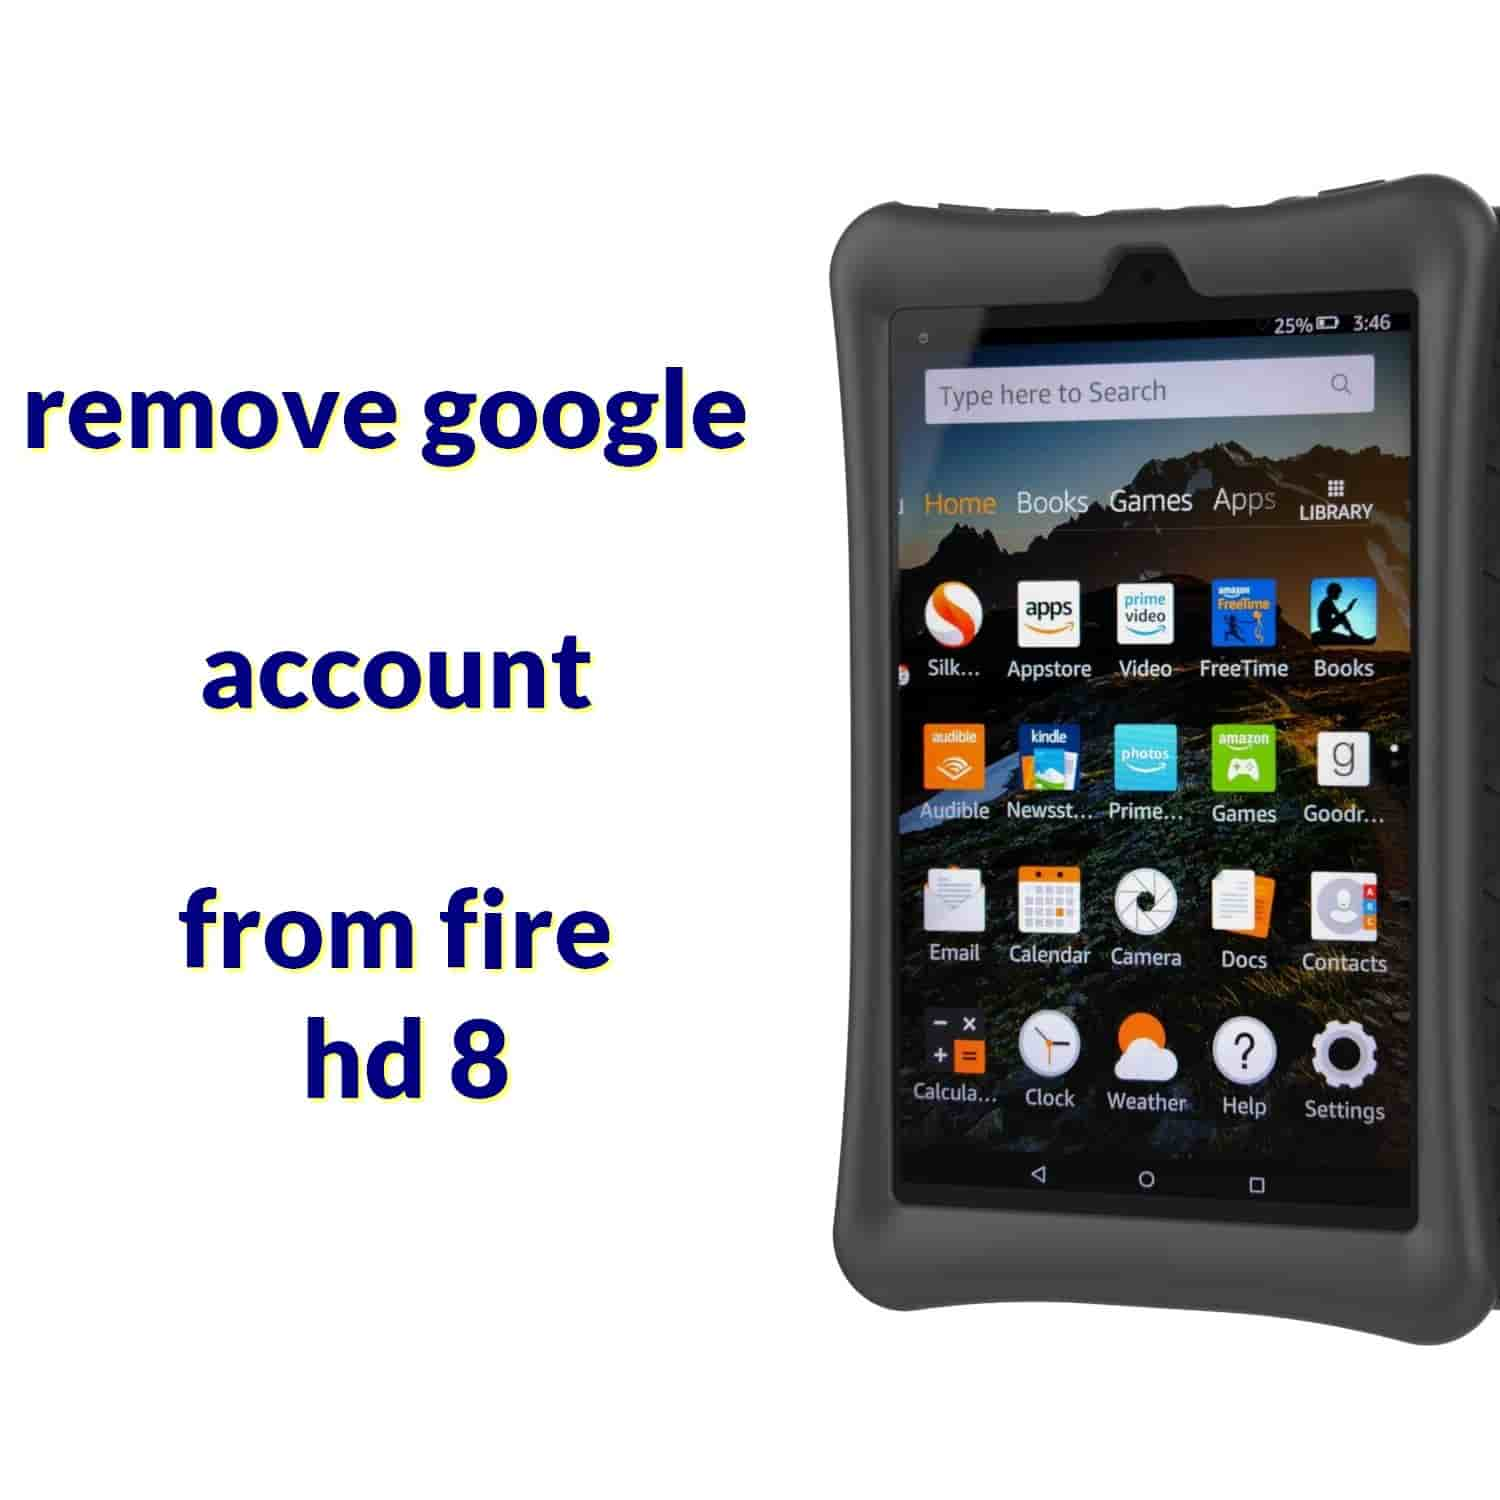 remove google account from fire hd 8